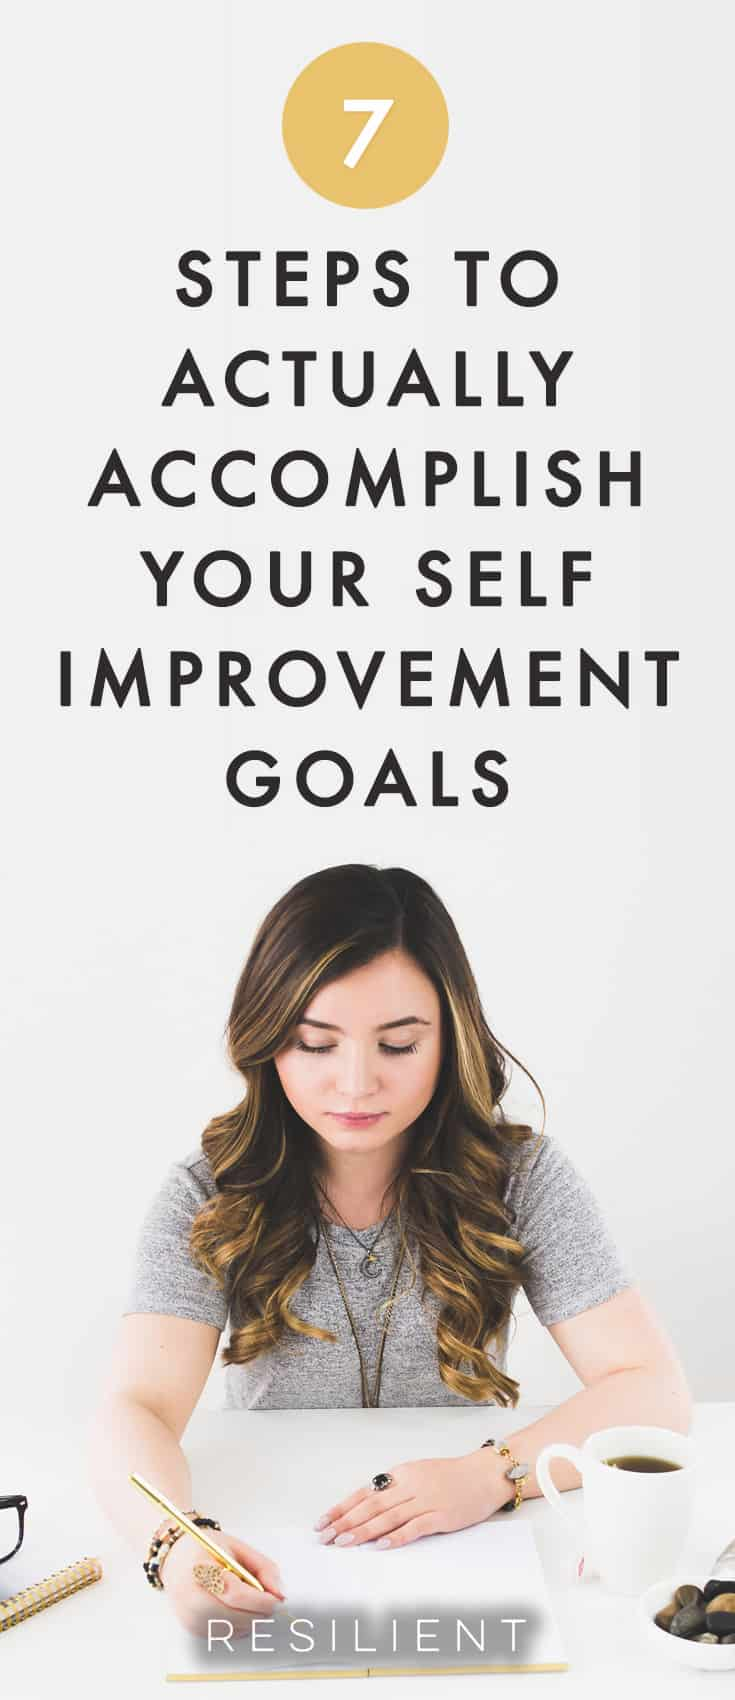 """How many times have we told ourselves in complete earnestness, """"I'm going to be more organized and productive from now on.""""? Or that the diet starts tomorrow? Or that we're going to make a real effort to exercise now? Only to have that enthusiasm fizzle away, and all our best intentions come to nothing? Here are 7 steps to actually accomplish your self improvement goals."""